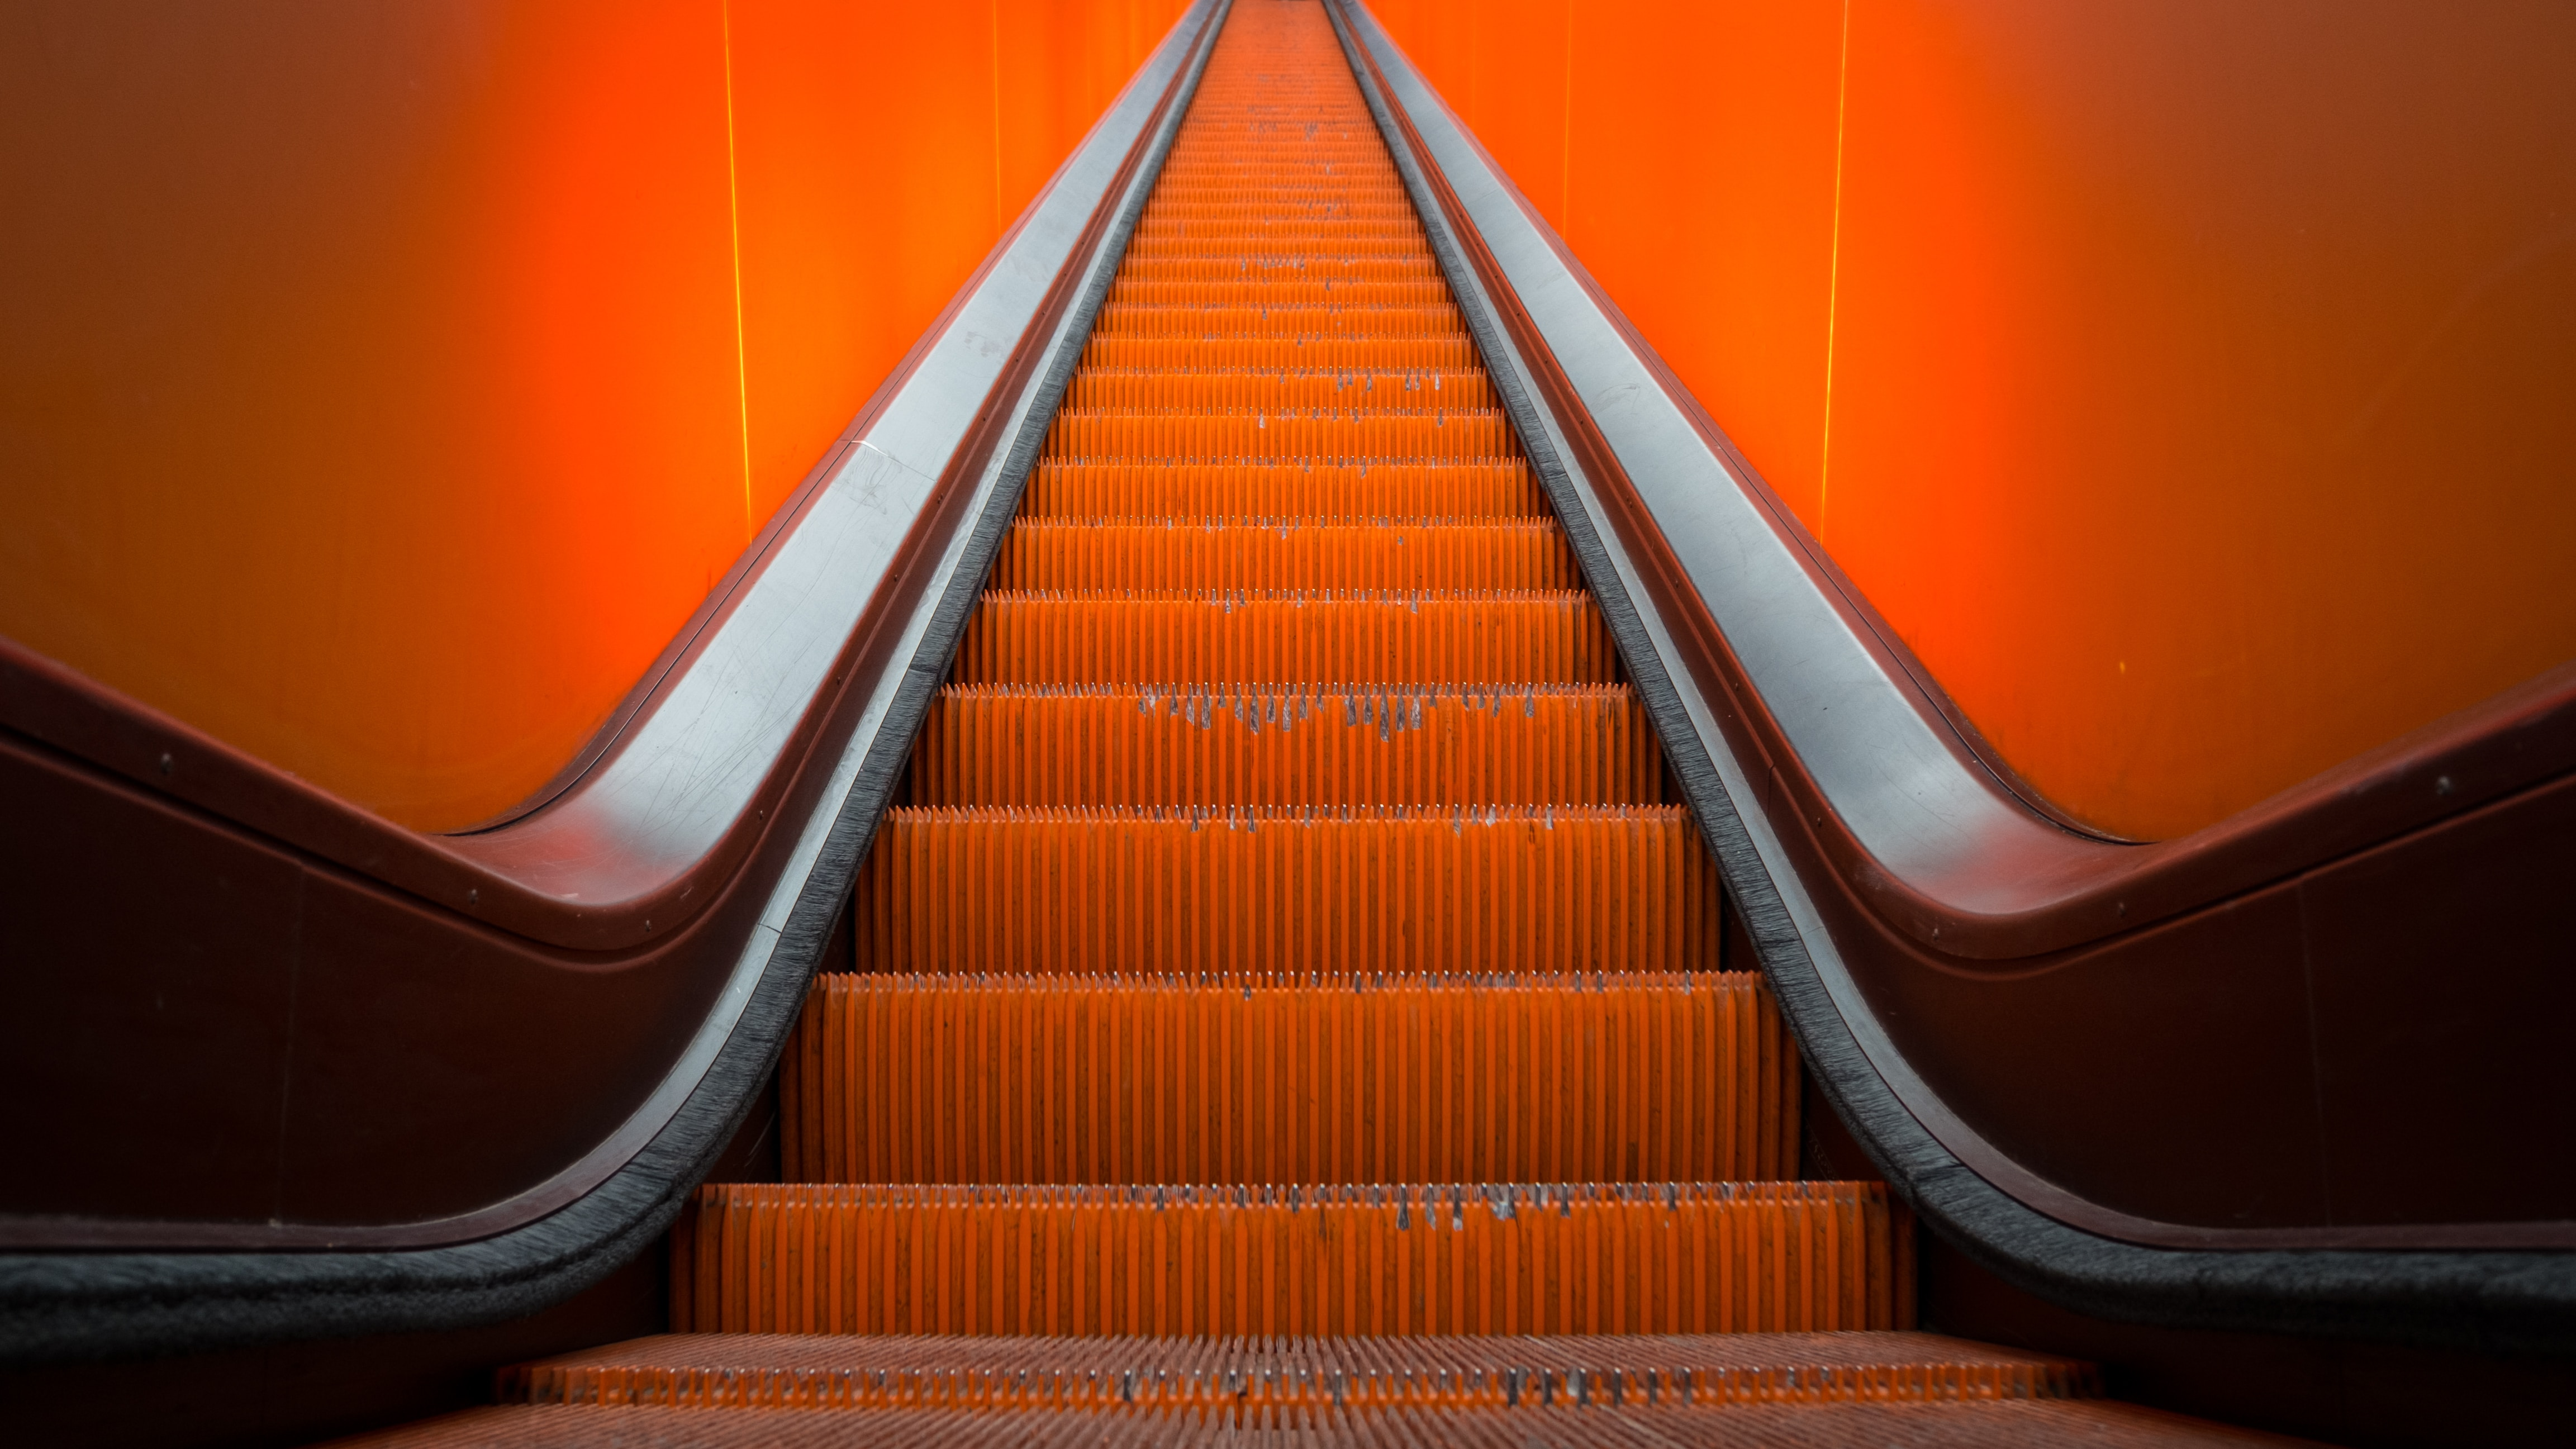 55517 free download Orange wallpapers for phone, Miscellanea, Miscellaneous, Escalator, Stairs, Ladder Orange images and screensavers for mobile